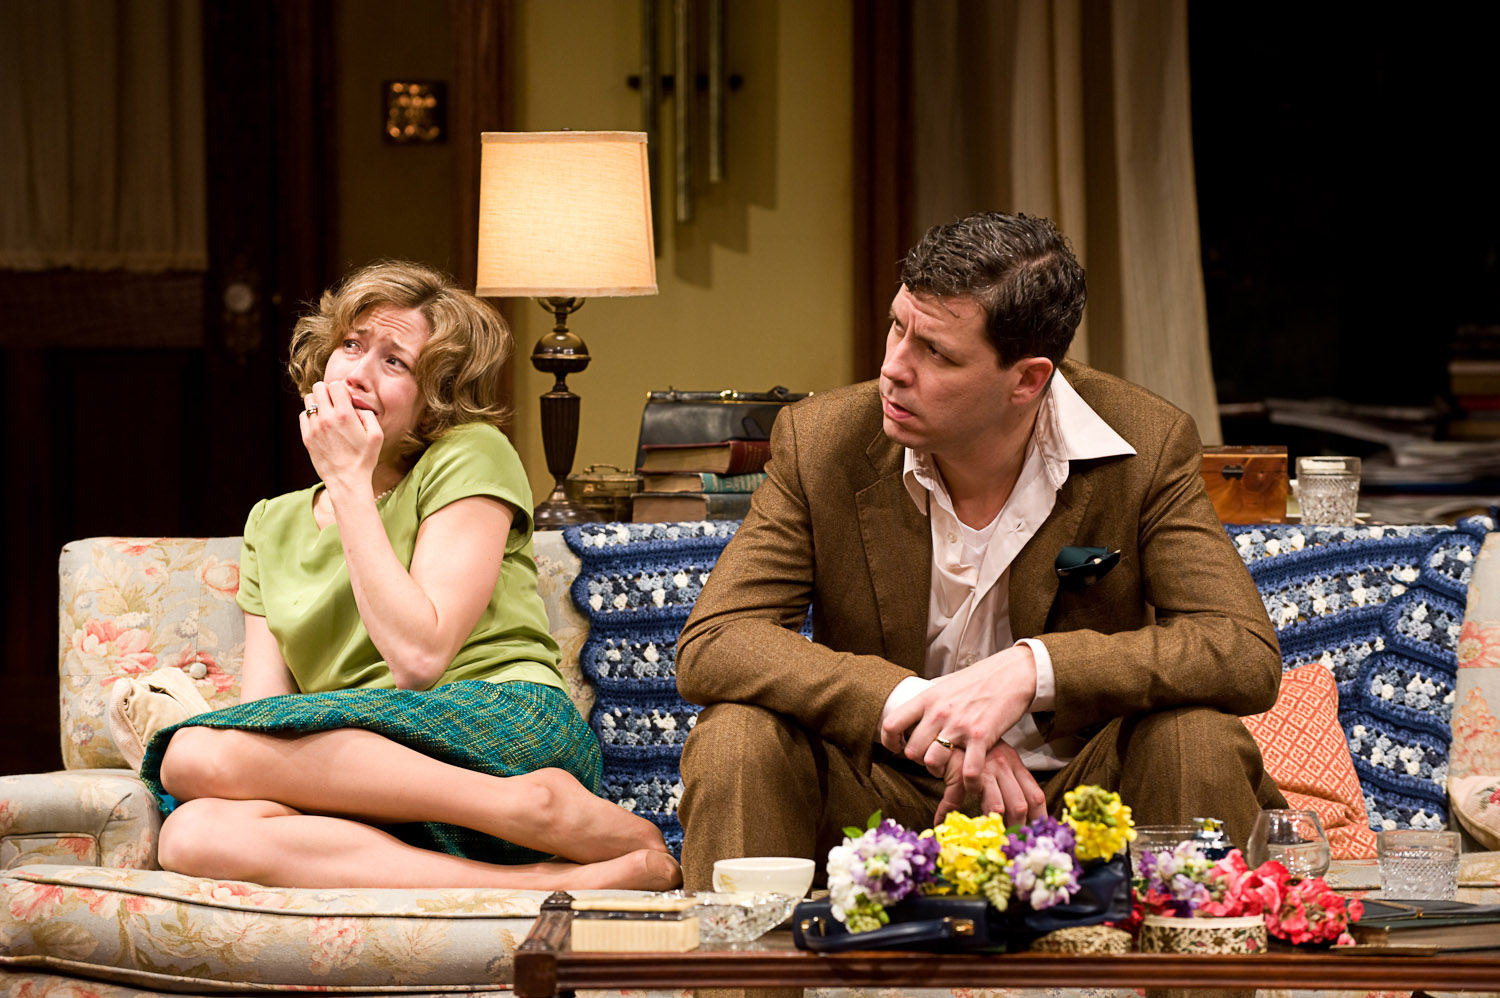 (left to right) Carrie Coon and Madison Dirks in Steppenwolf Theatre Company's production of Edward Albee's Who's Afraid of Virginia Woolf? Directed by Pam MacKinnon. Photo by Michael Brosilow.